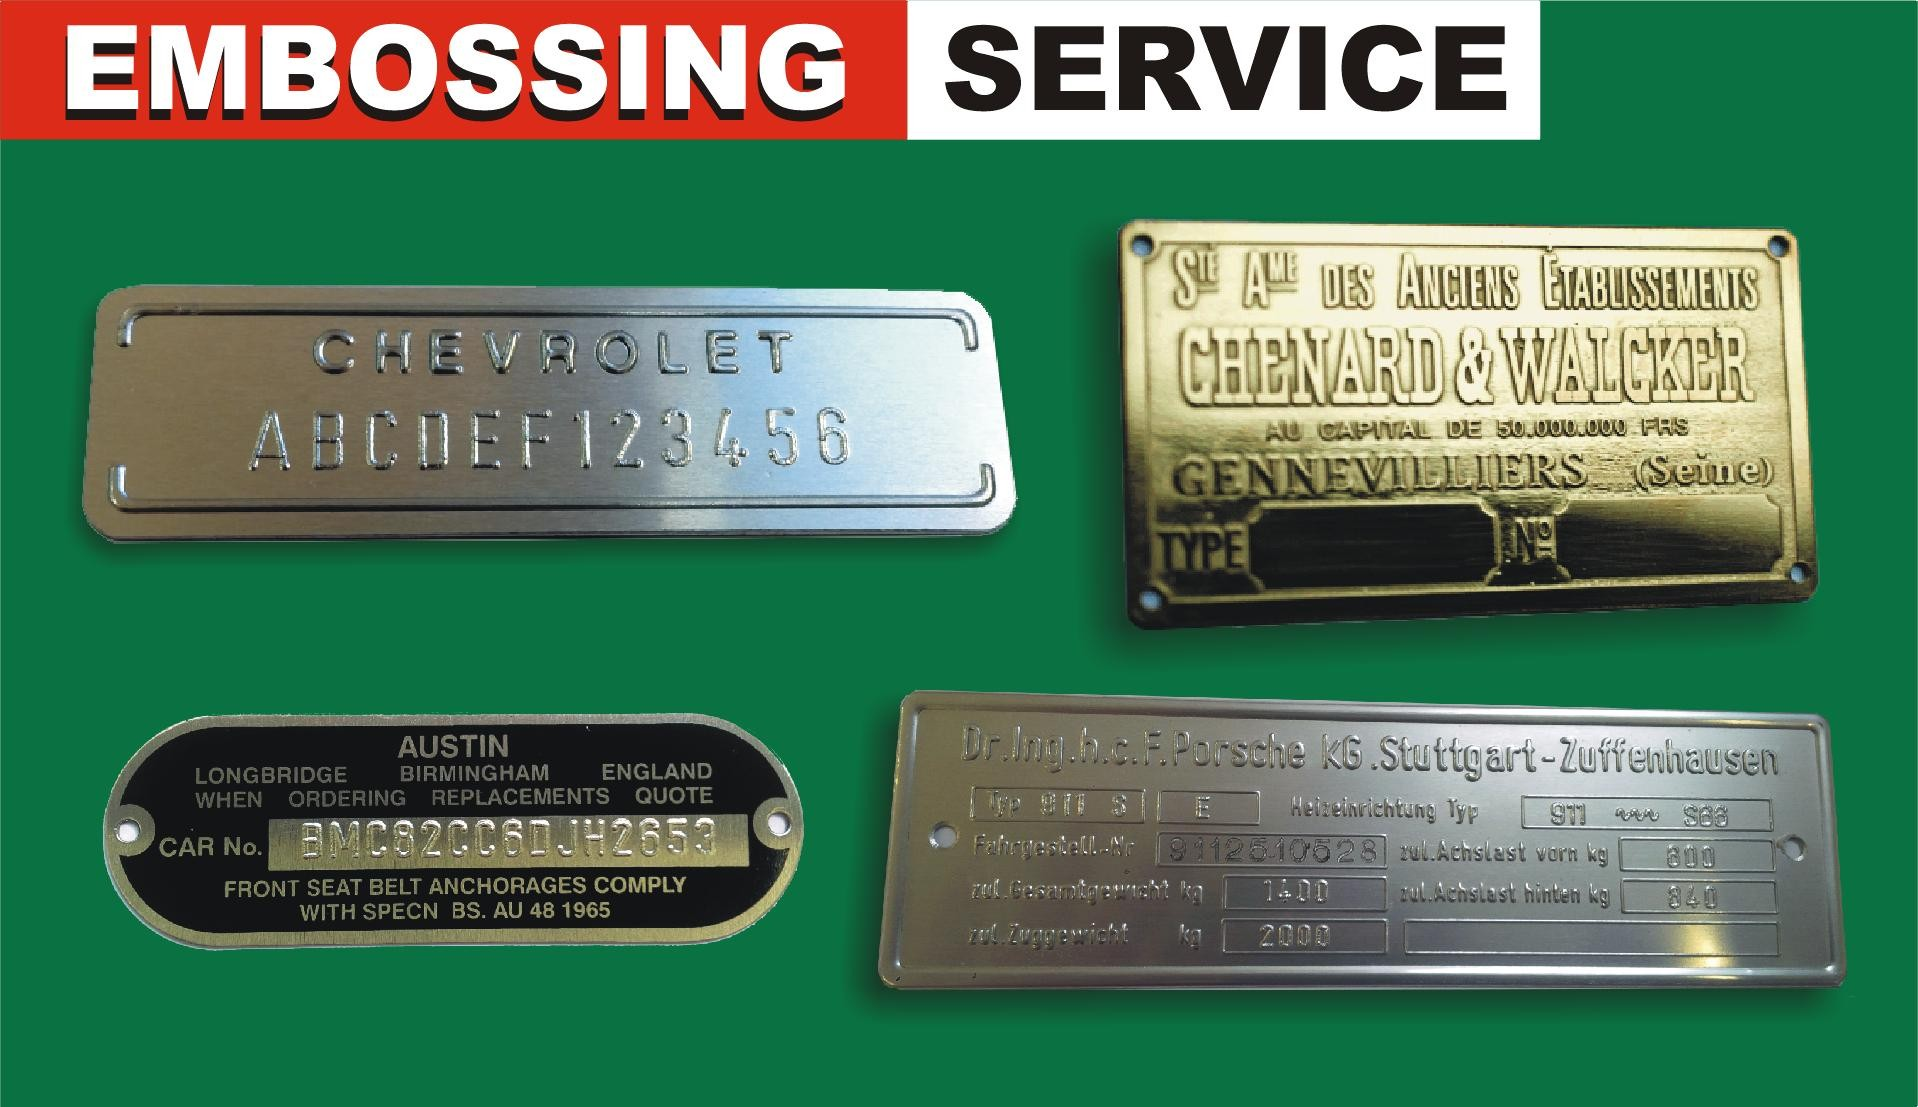 Embossing Service